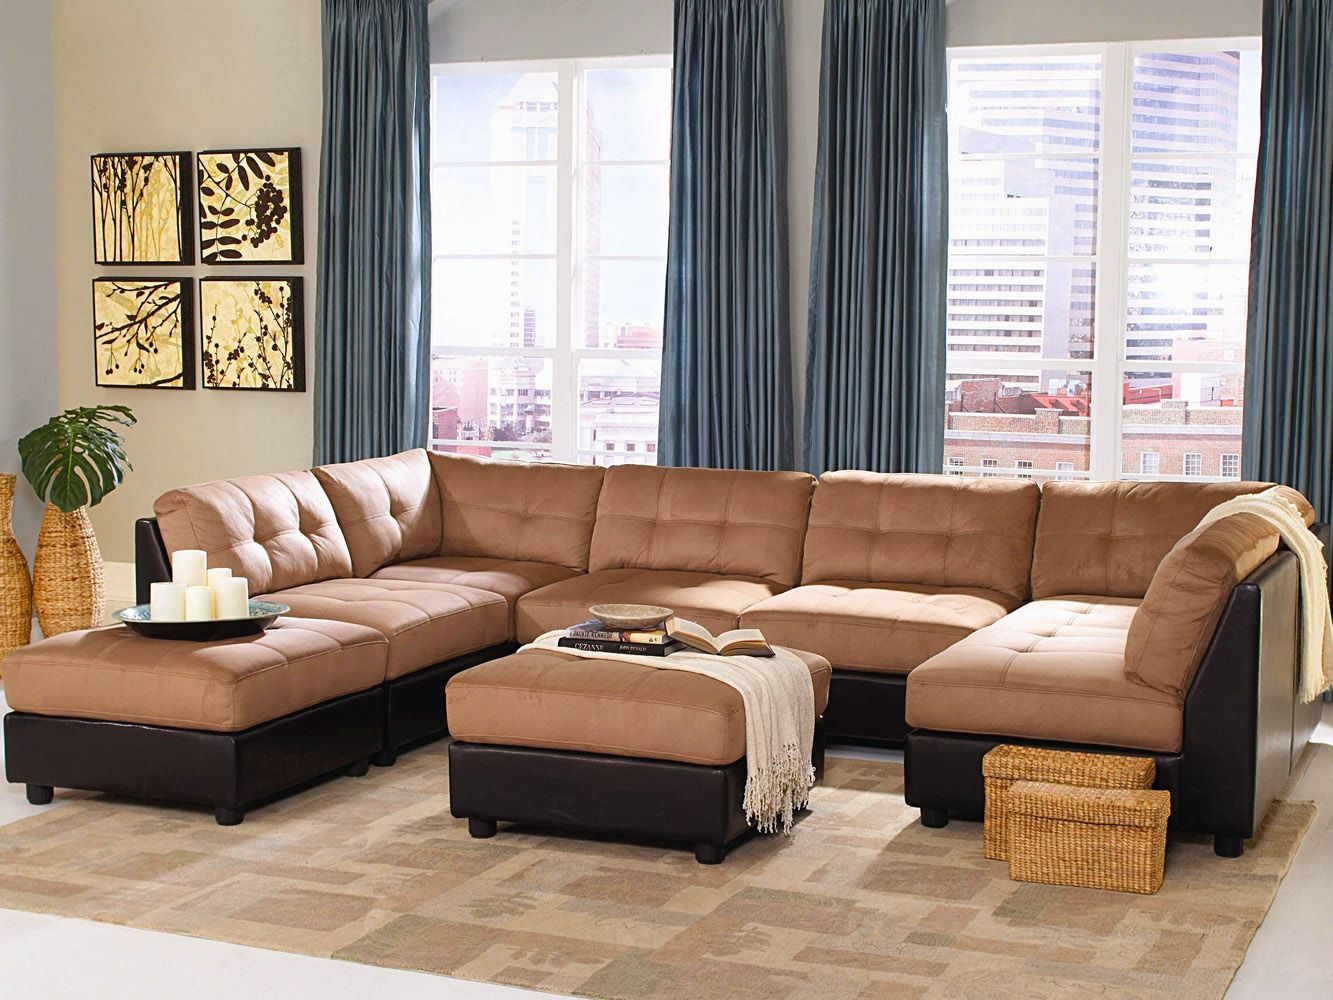 Couches Leather Furniture Living Room Contemporary Style interior ideas